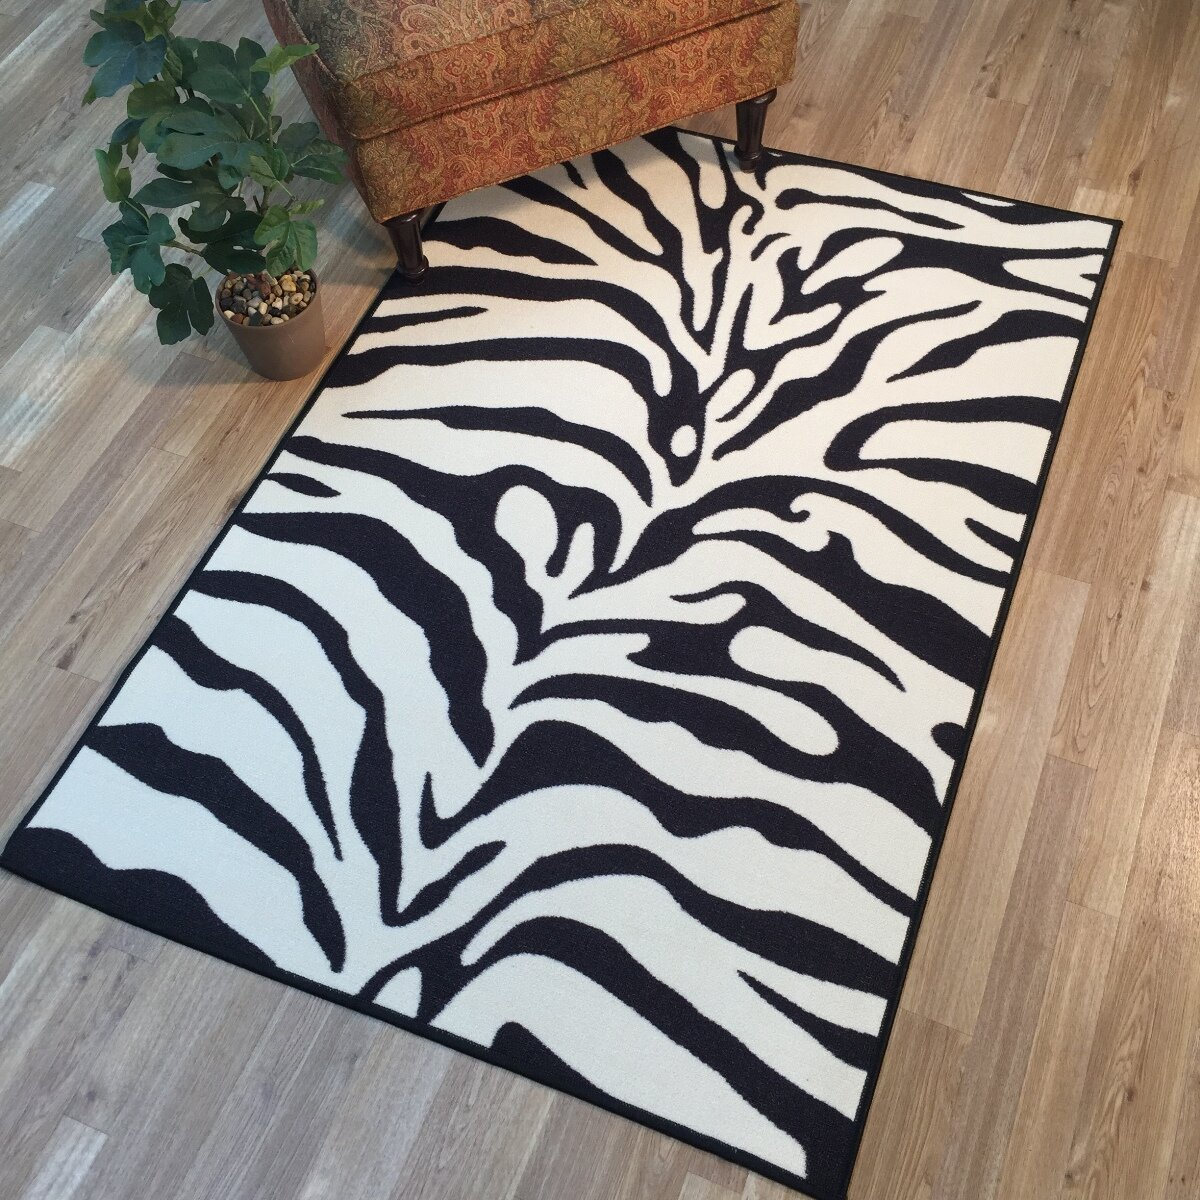 Rugnur Hammam Maxy Home Zebra Black/Snow White Area Rug